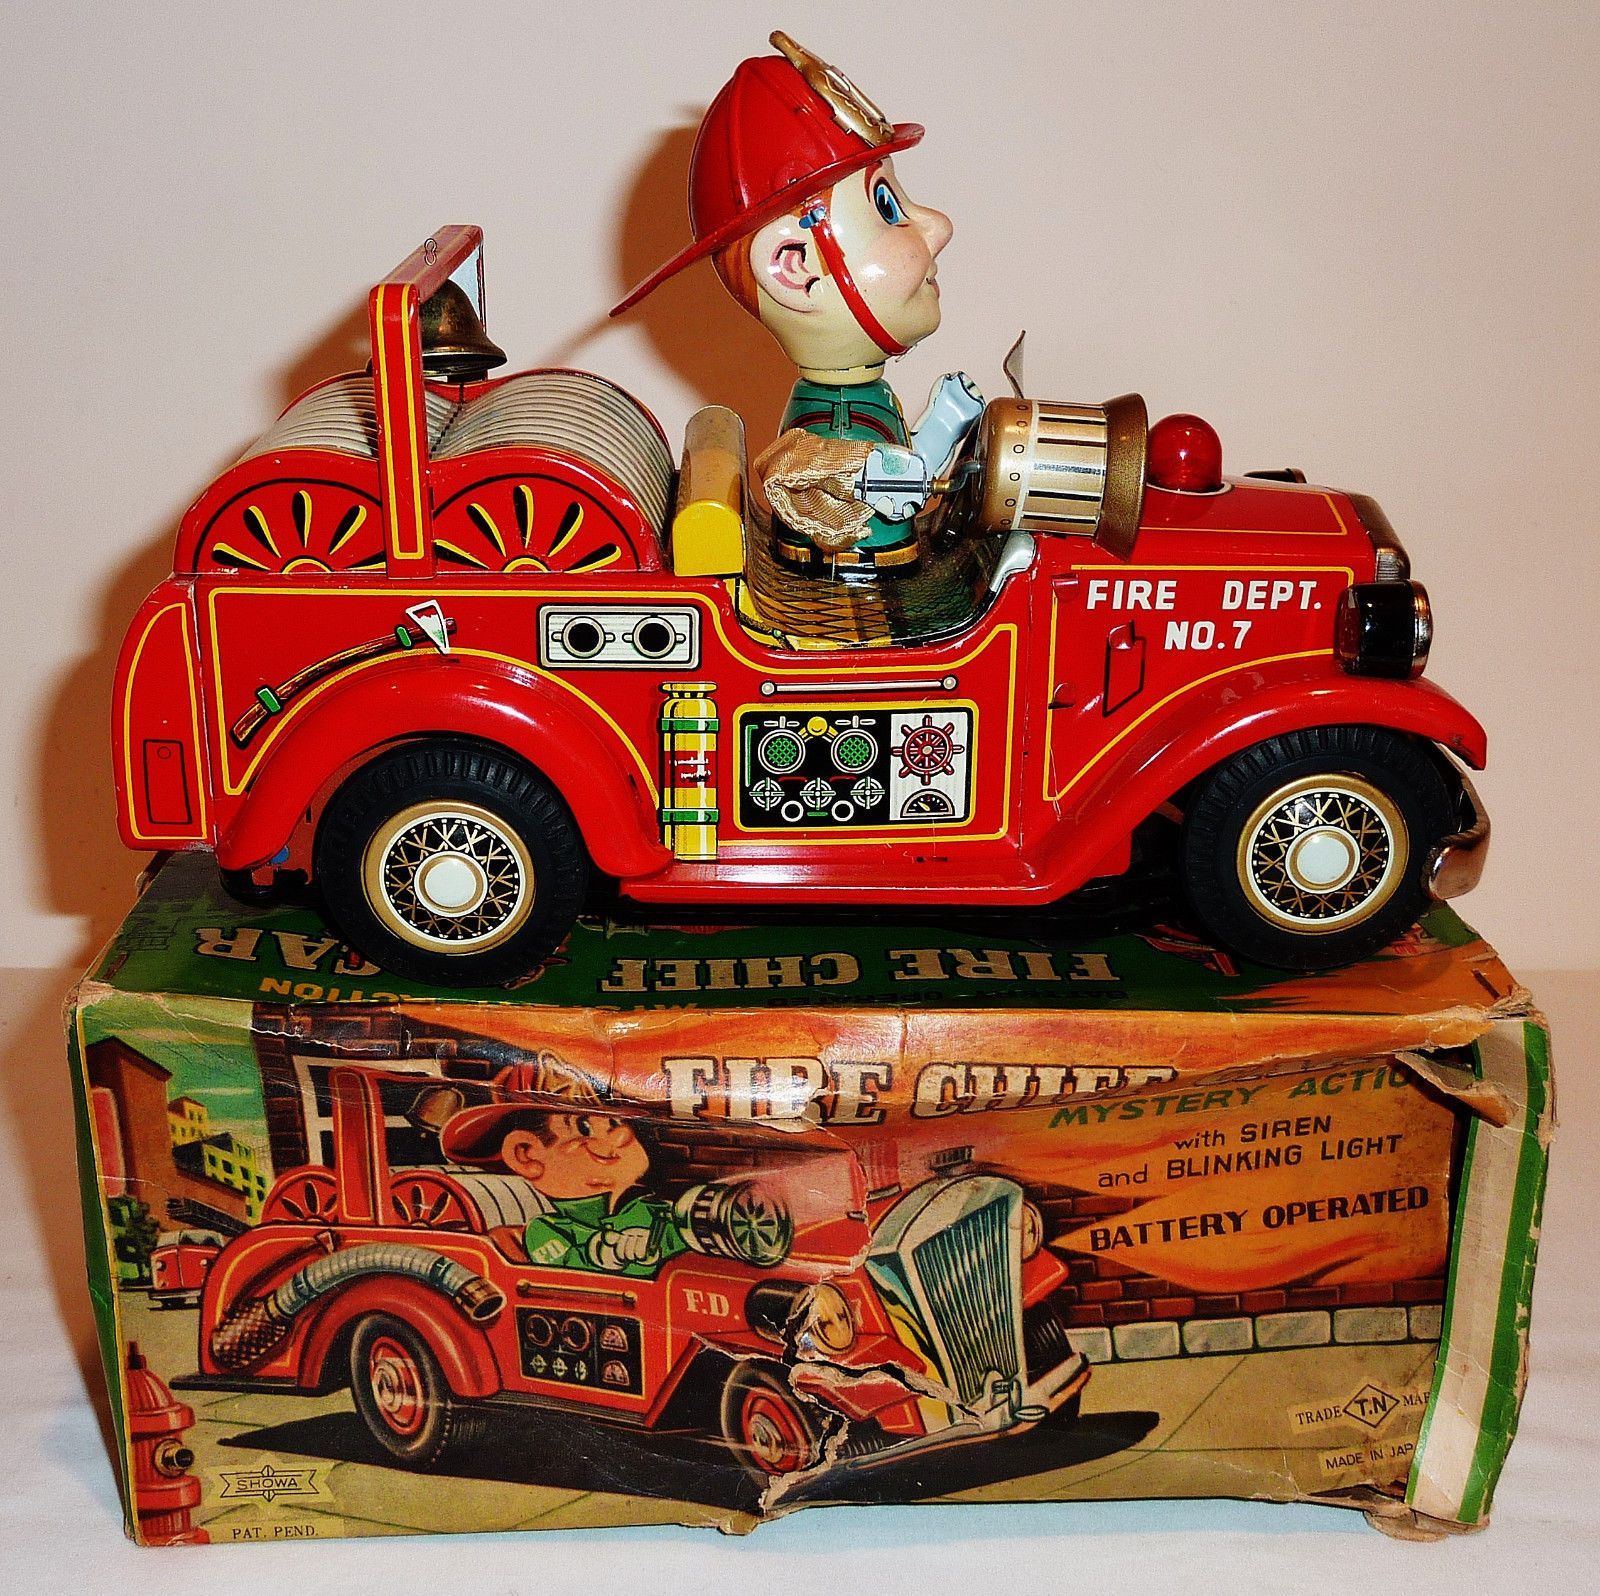 Nomra Fire Chief Car Batt Op toy from 50s ebay